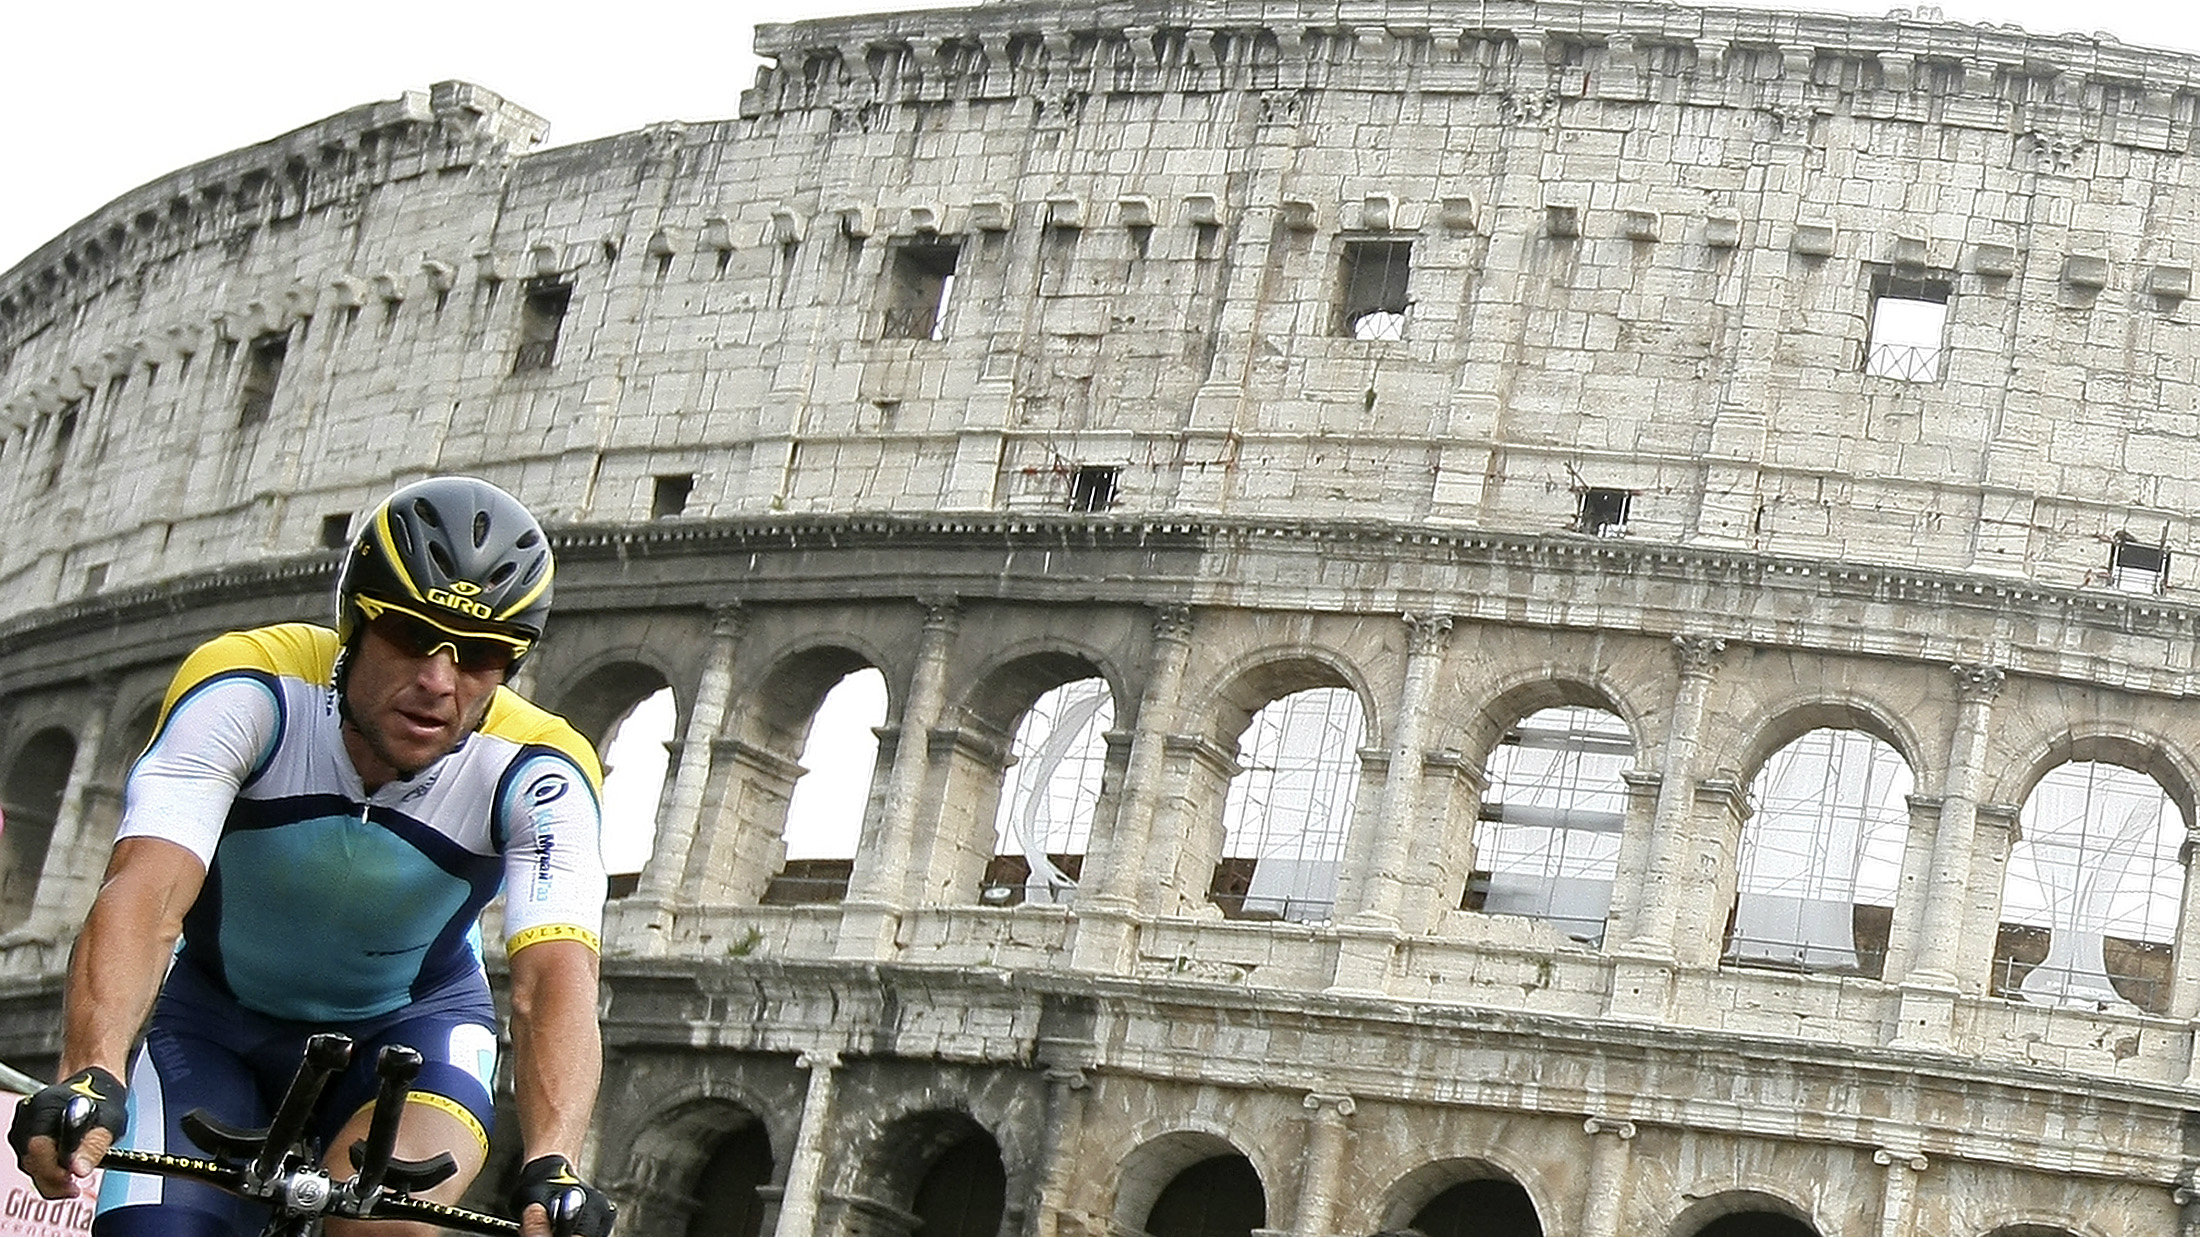 Lance Armstrong biking in front of the Colloseum.